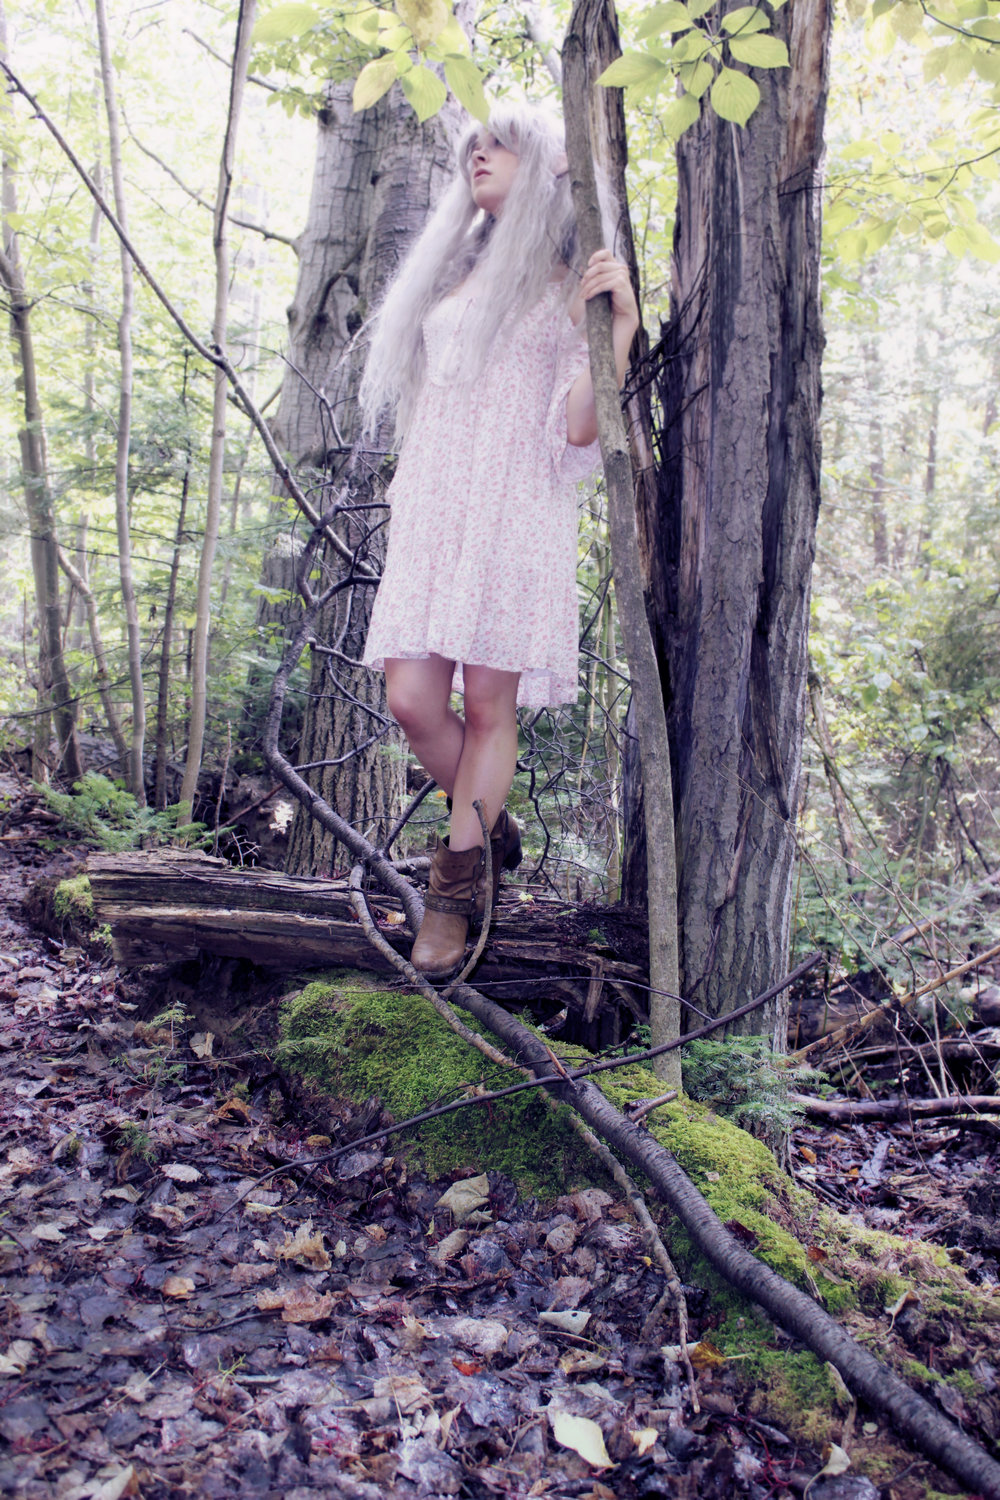 An elf in the woods: A female elf with silver hair standing on a log in the forest. In this fantasy cosplay costume, Phantom is wearing latex elf ears from Aradani Costumes.